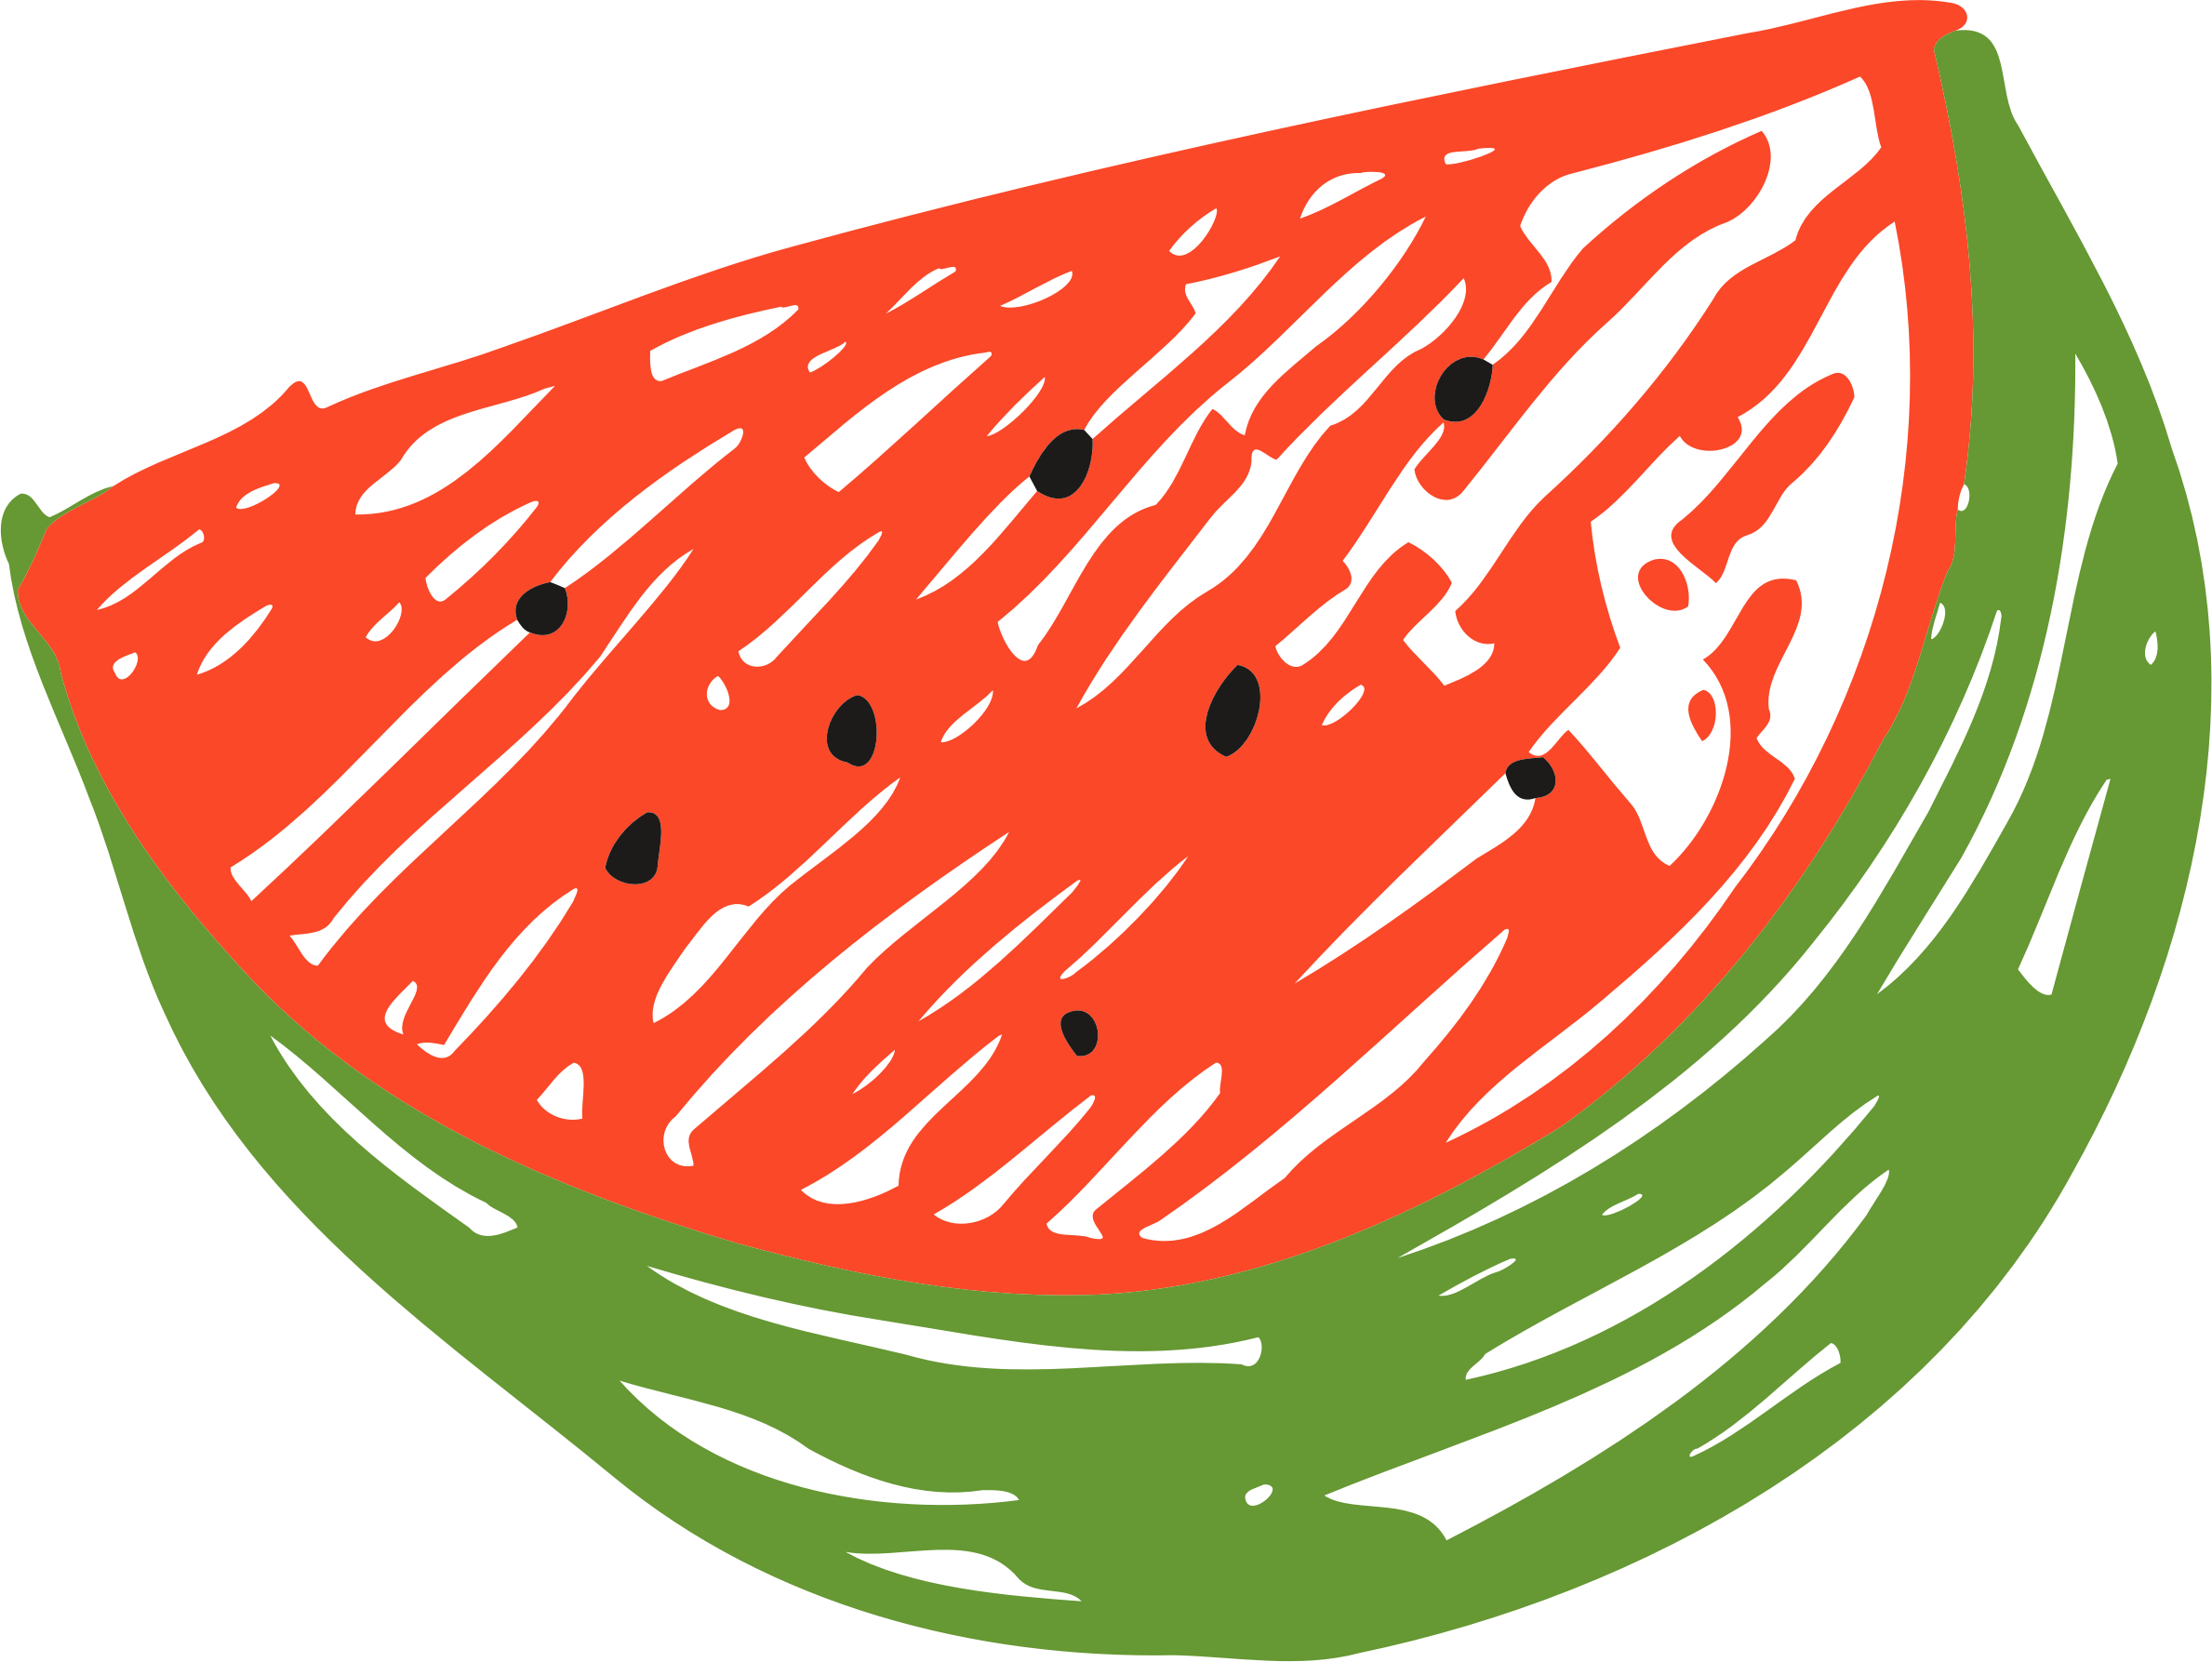 Sketched watermelon by Firkin